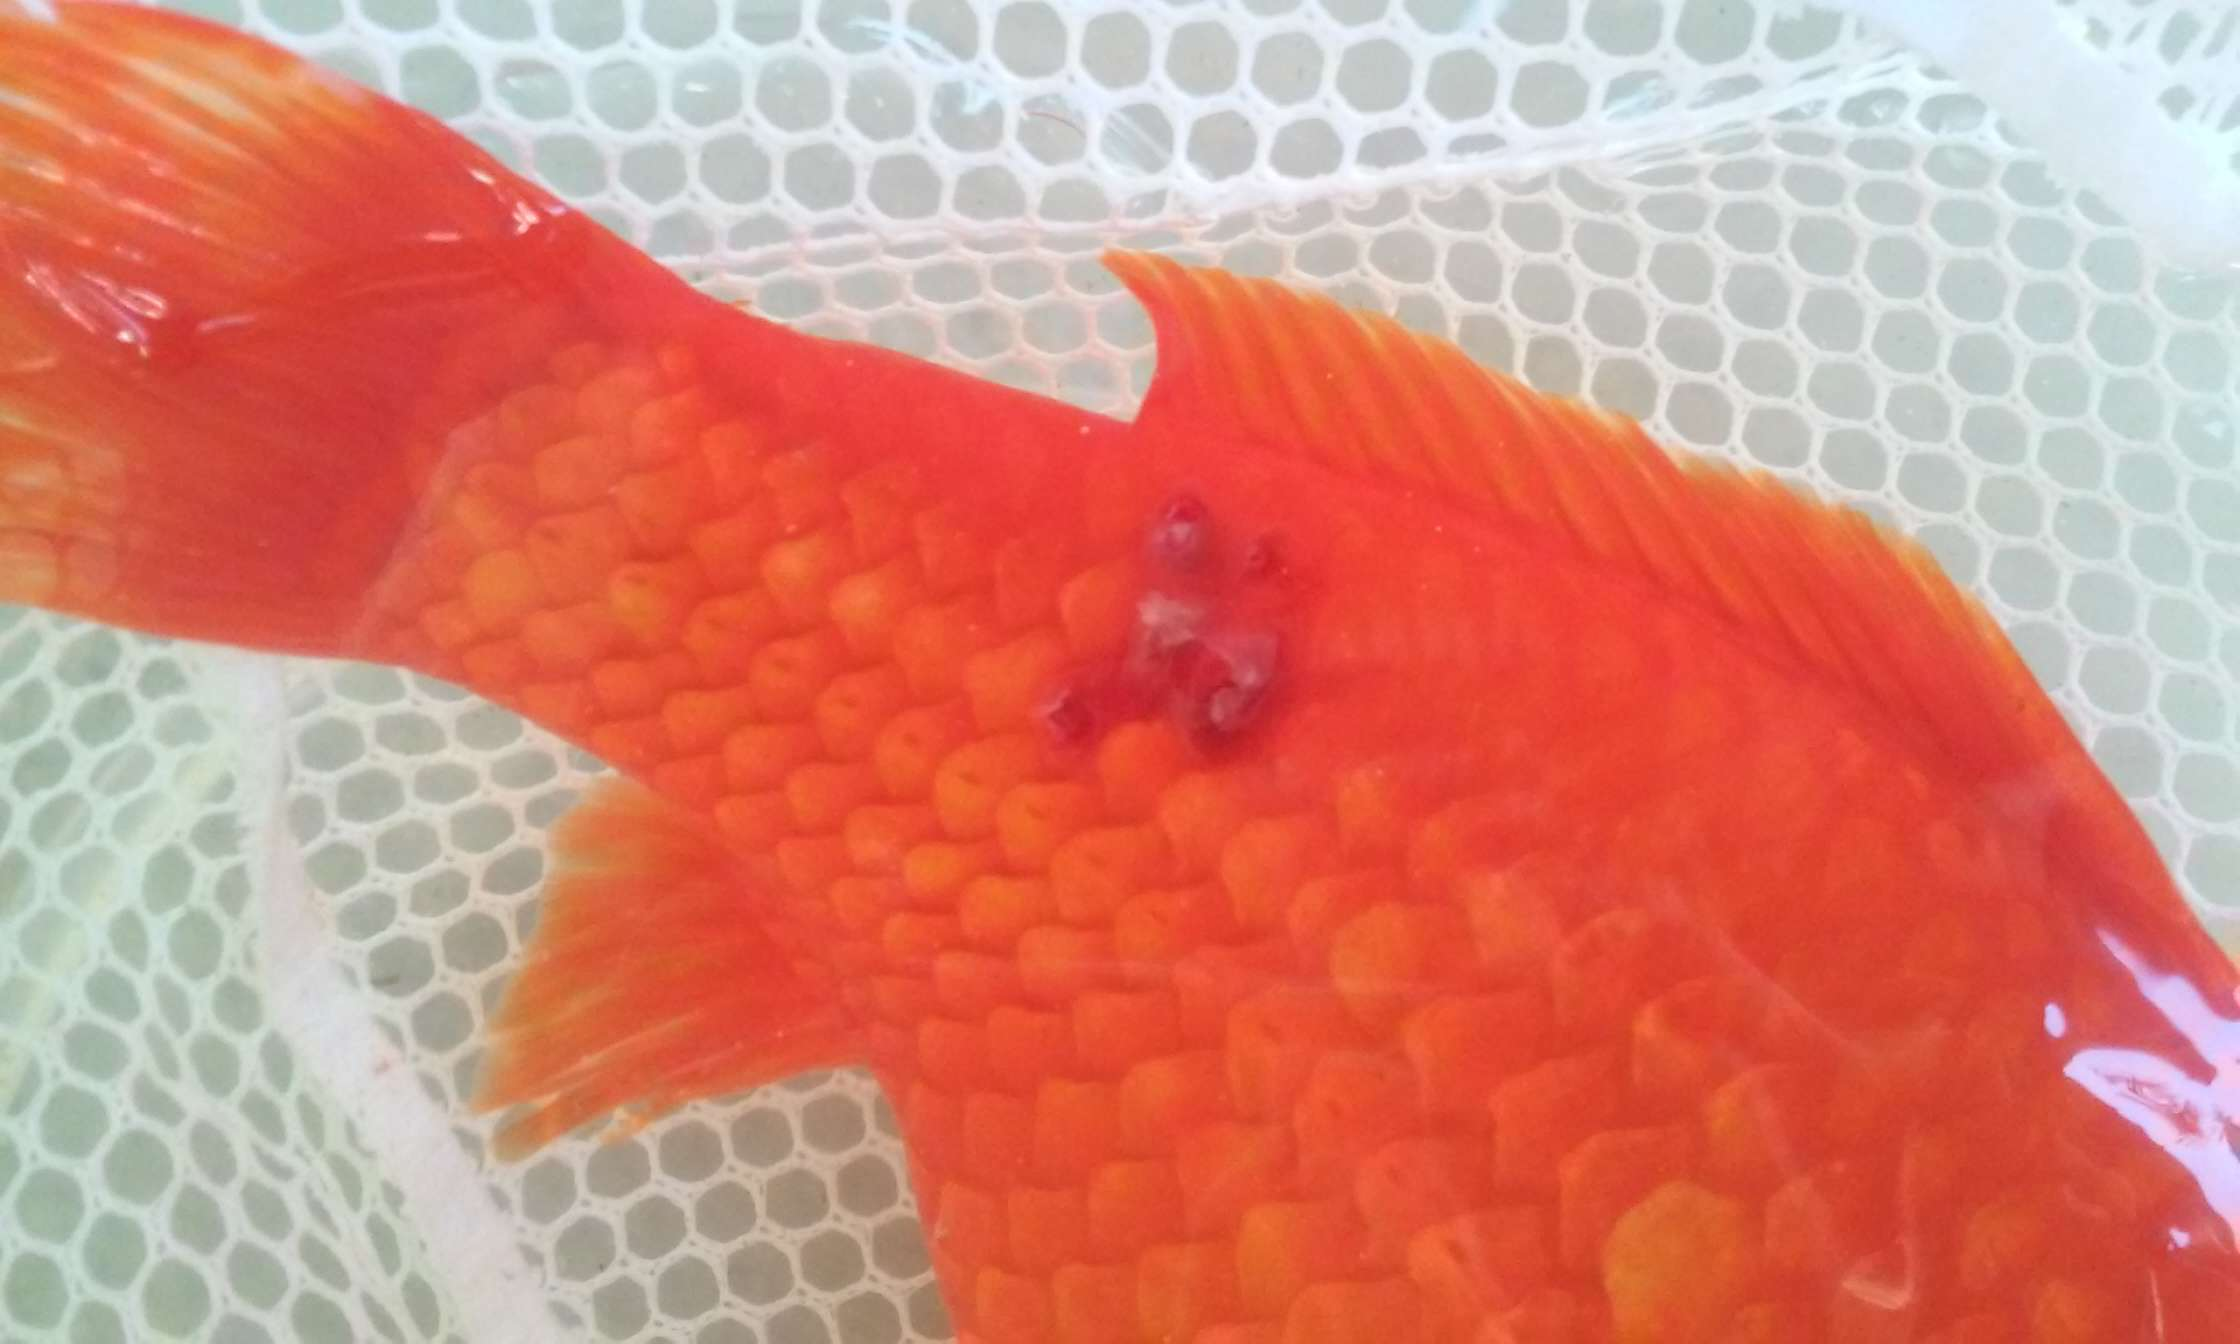 Fish with bruising from parasite infestation